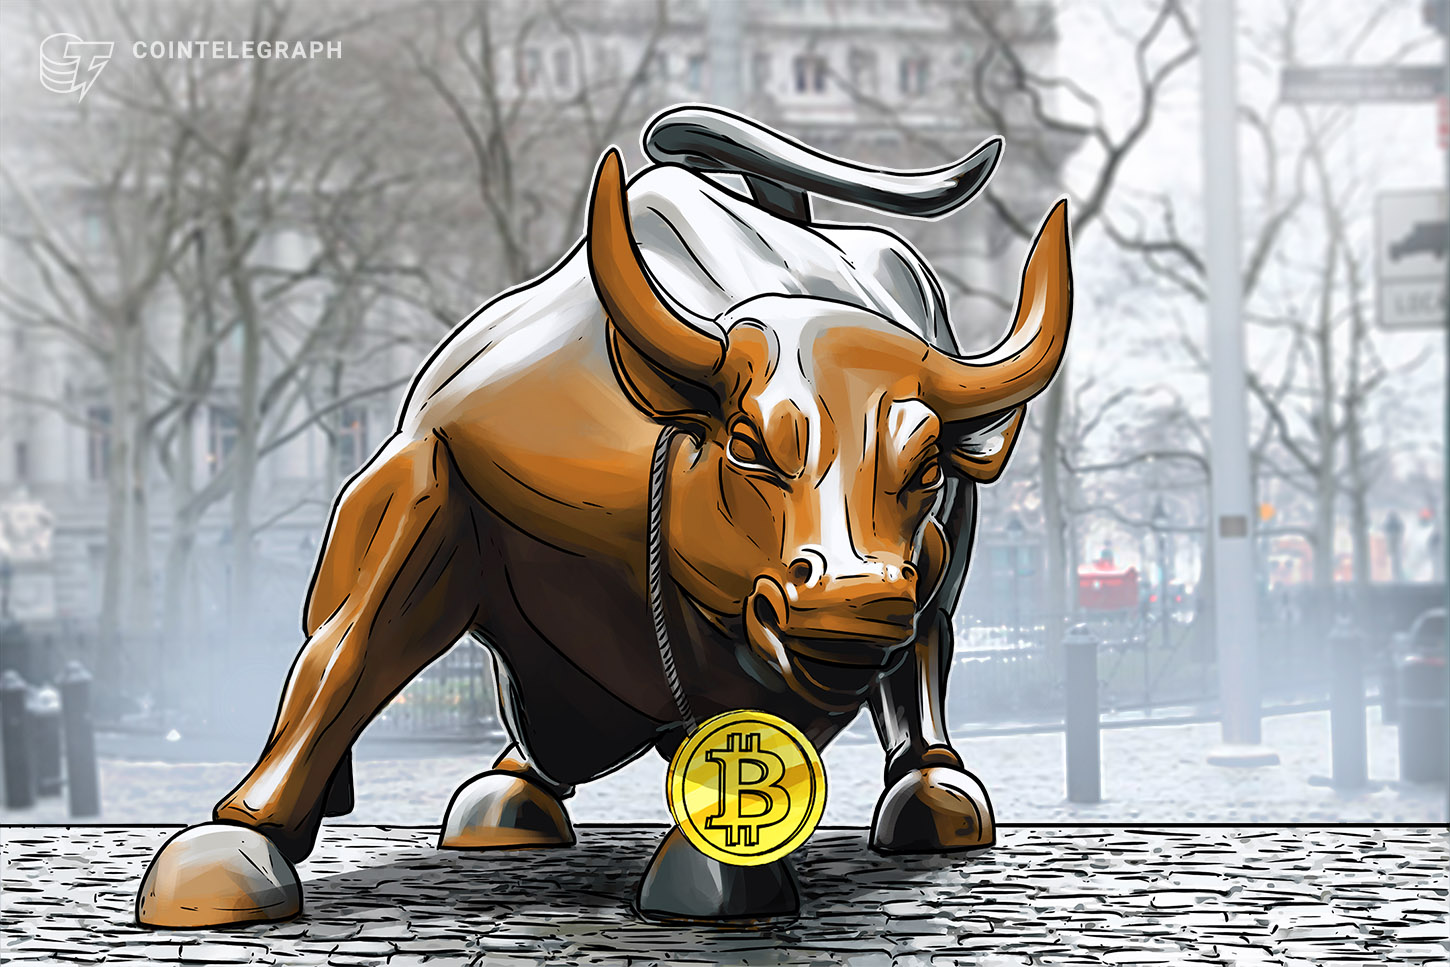 Bulls favored ahead of record $6.1B Bitcoin options expiry on March 26